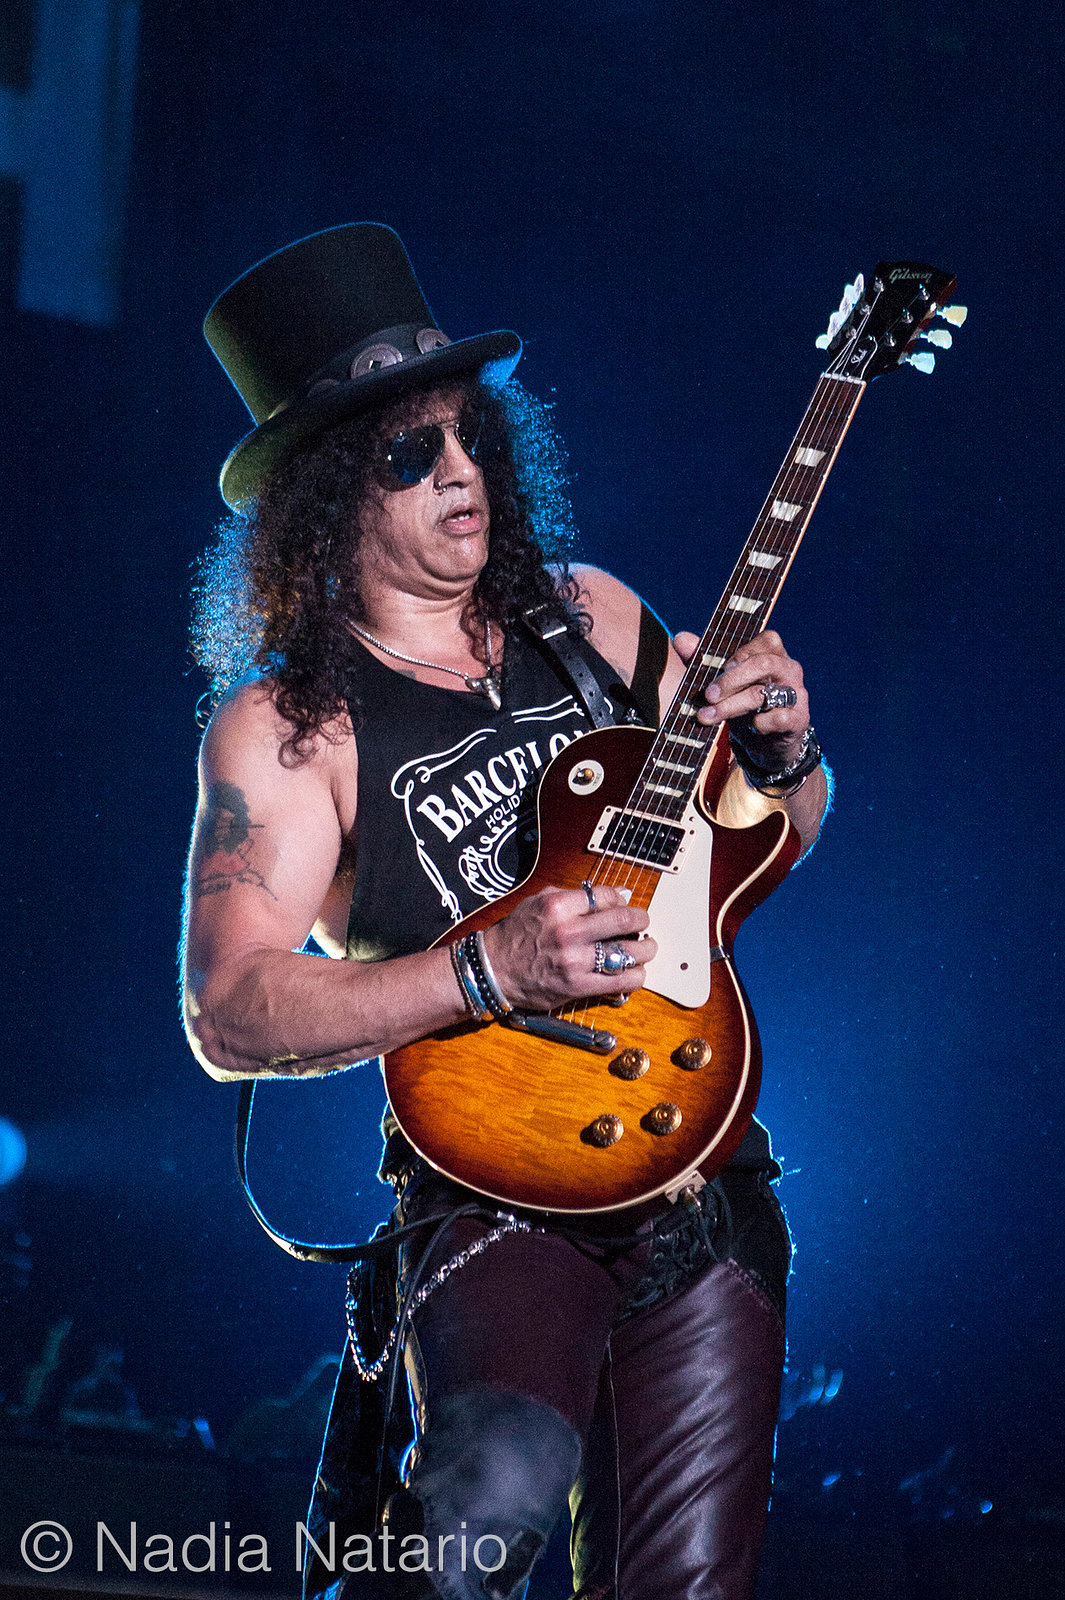 Slash Featuring Myles Kennedy And The Conspirators at Sant Jordi Club